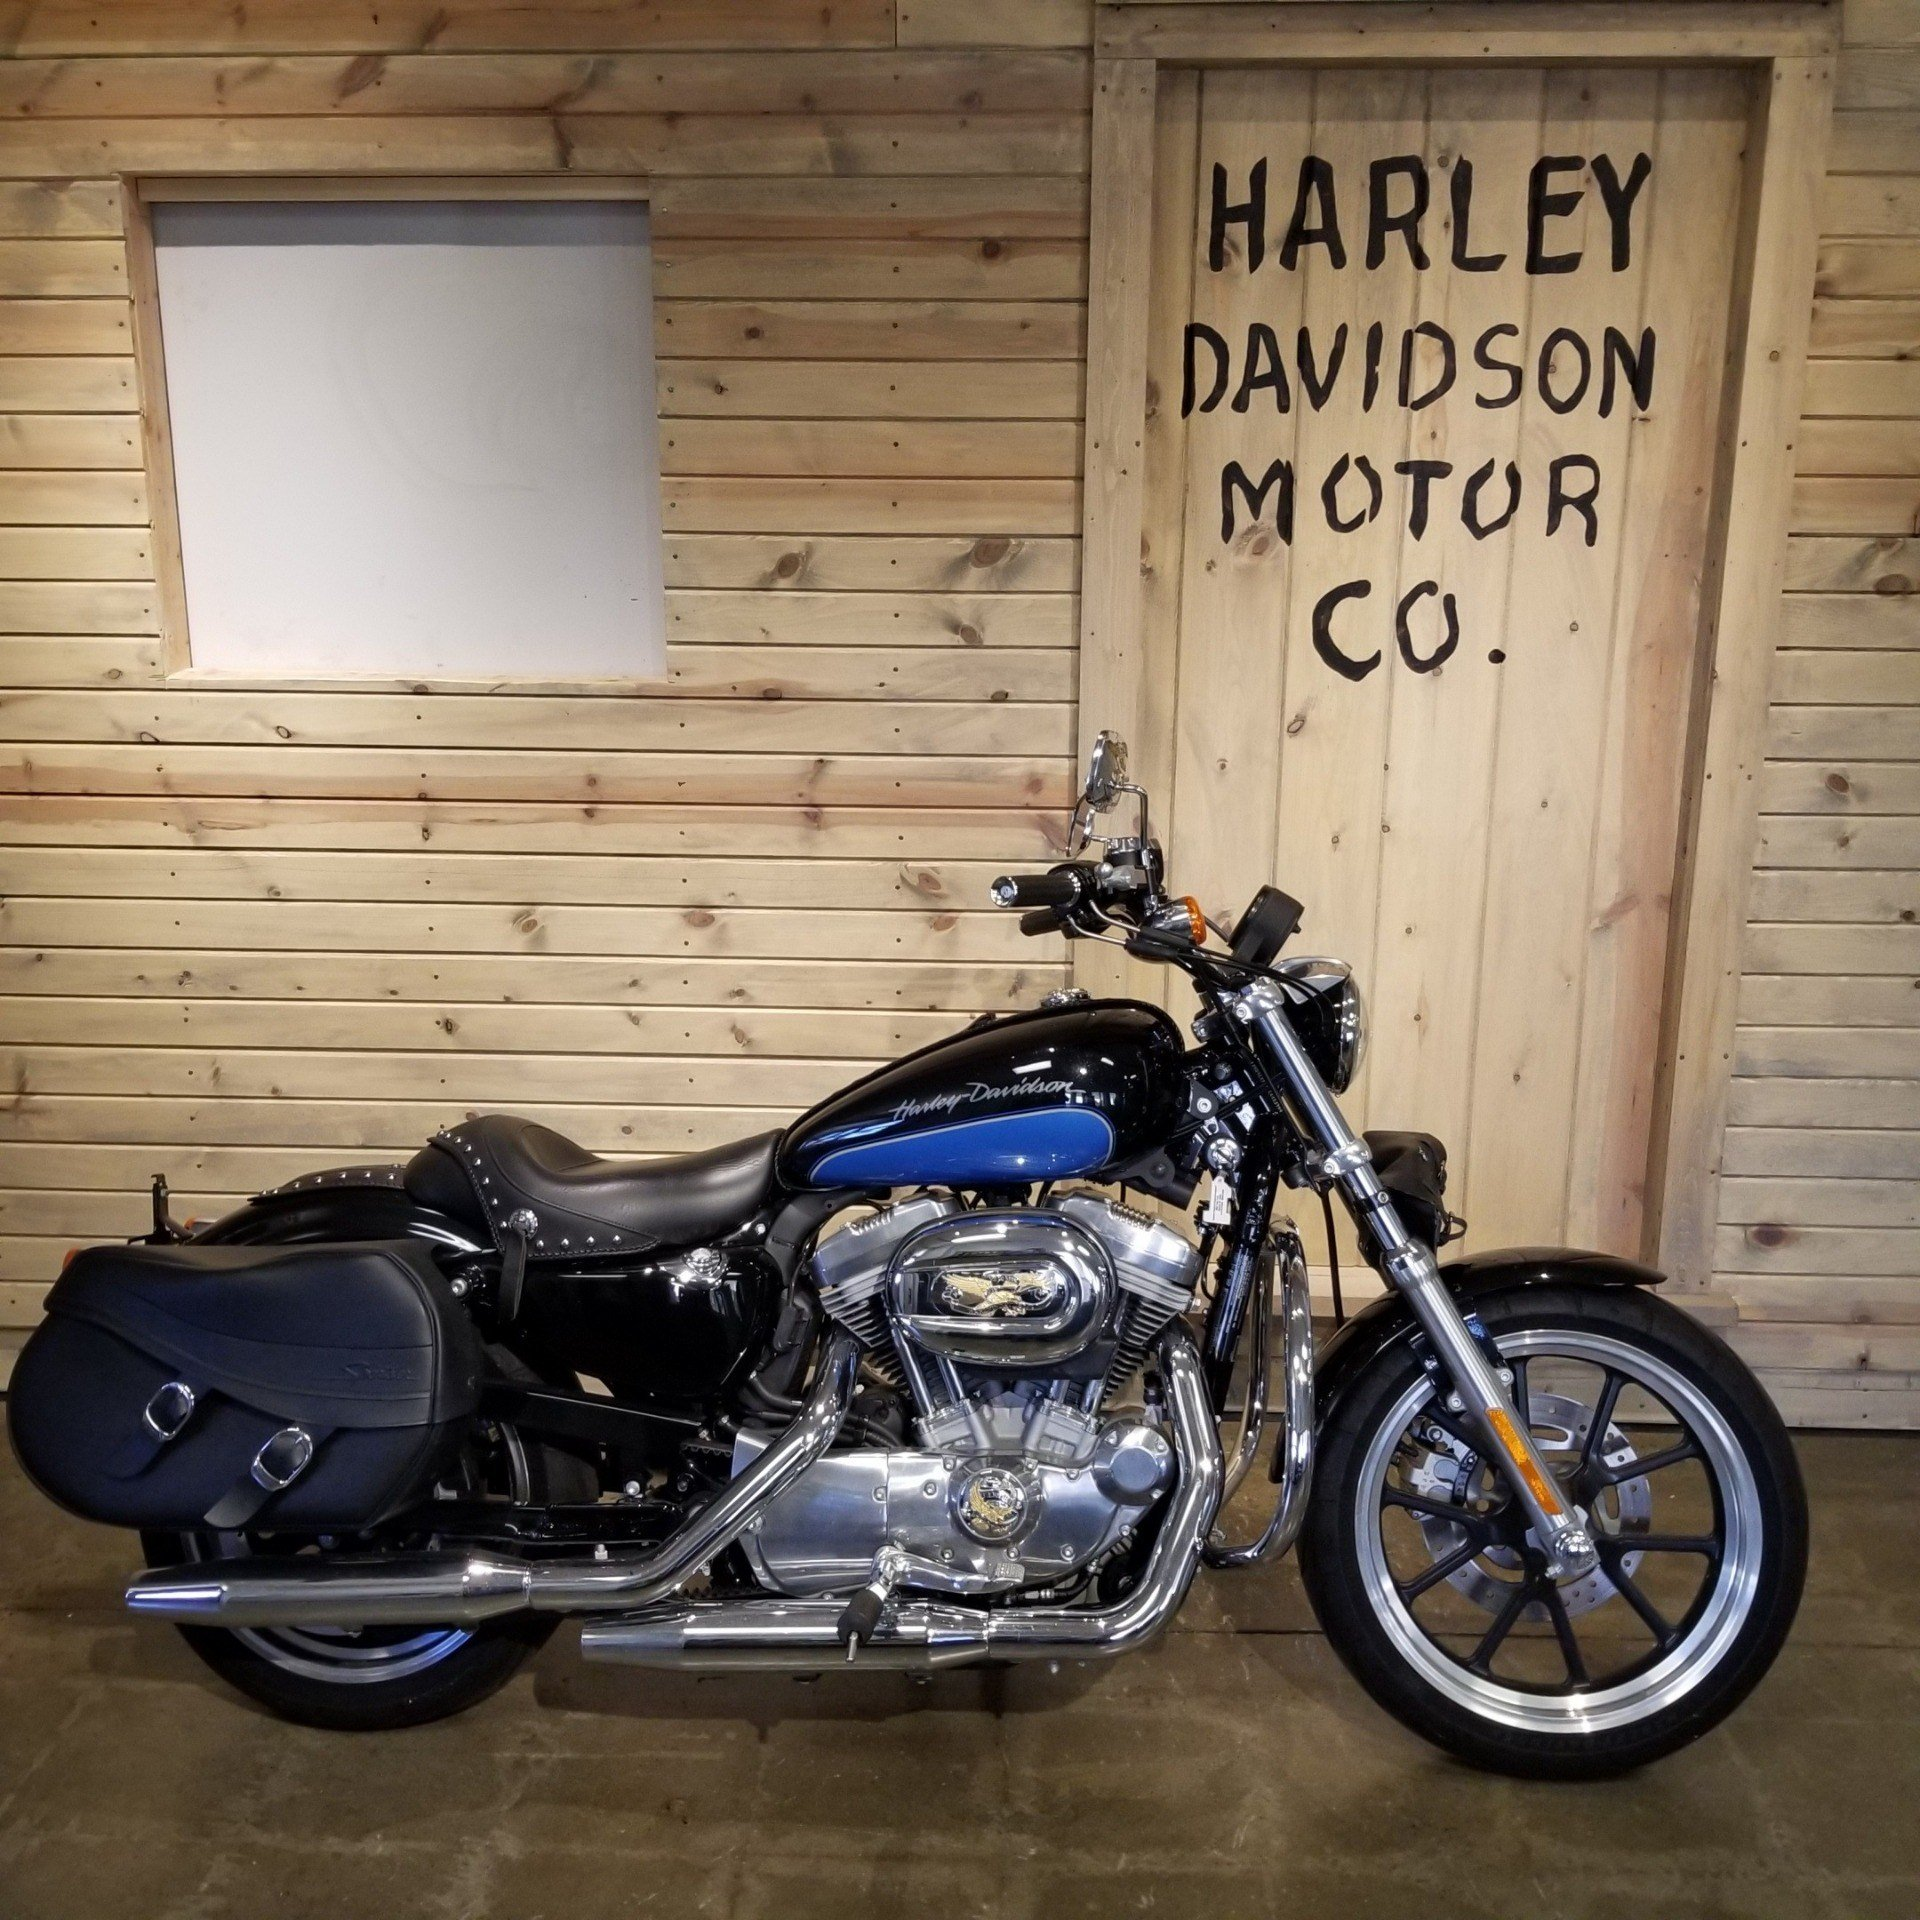 Used 2012 Harley Davidson Sportster 883 Superlow Motorcycles In Mentor Oh Stock Number 12 Up B853912